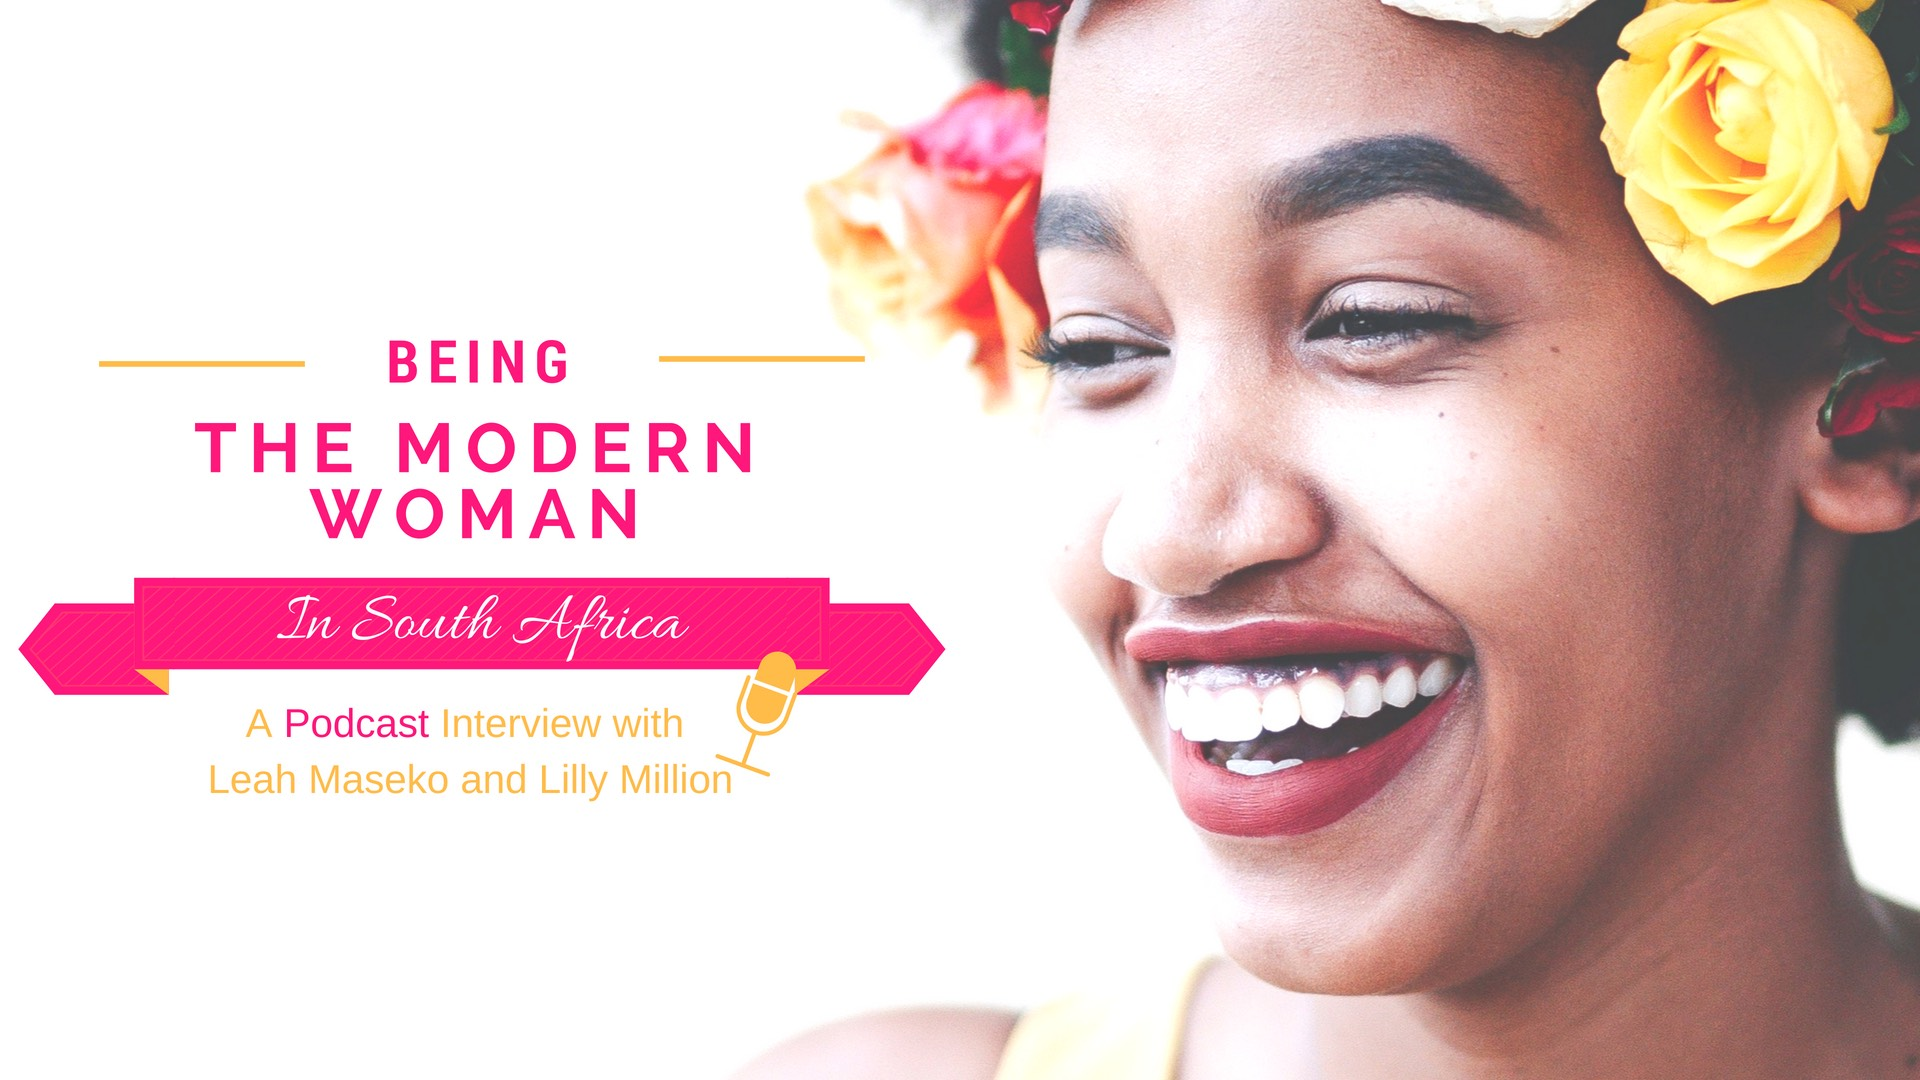 Being a Modern Woman in South Africa